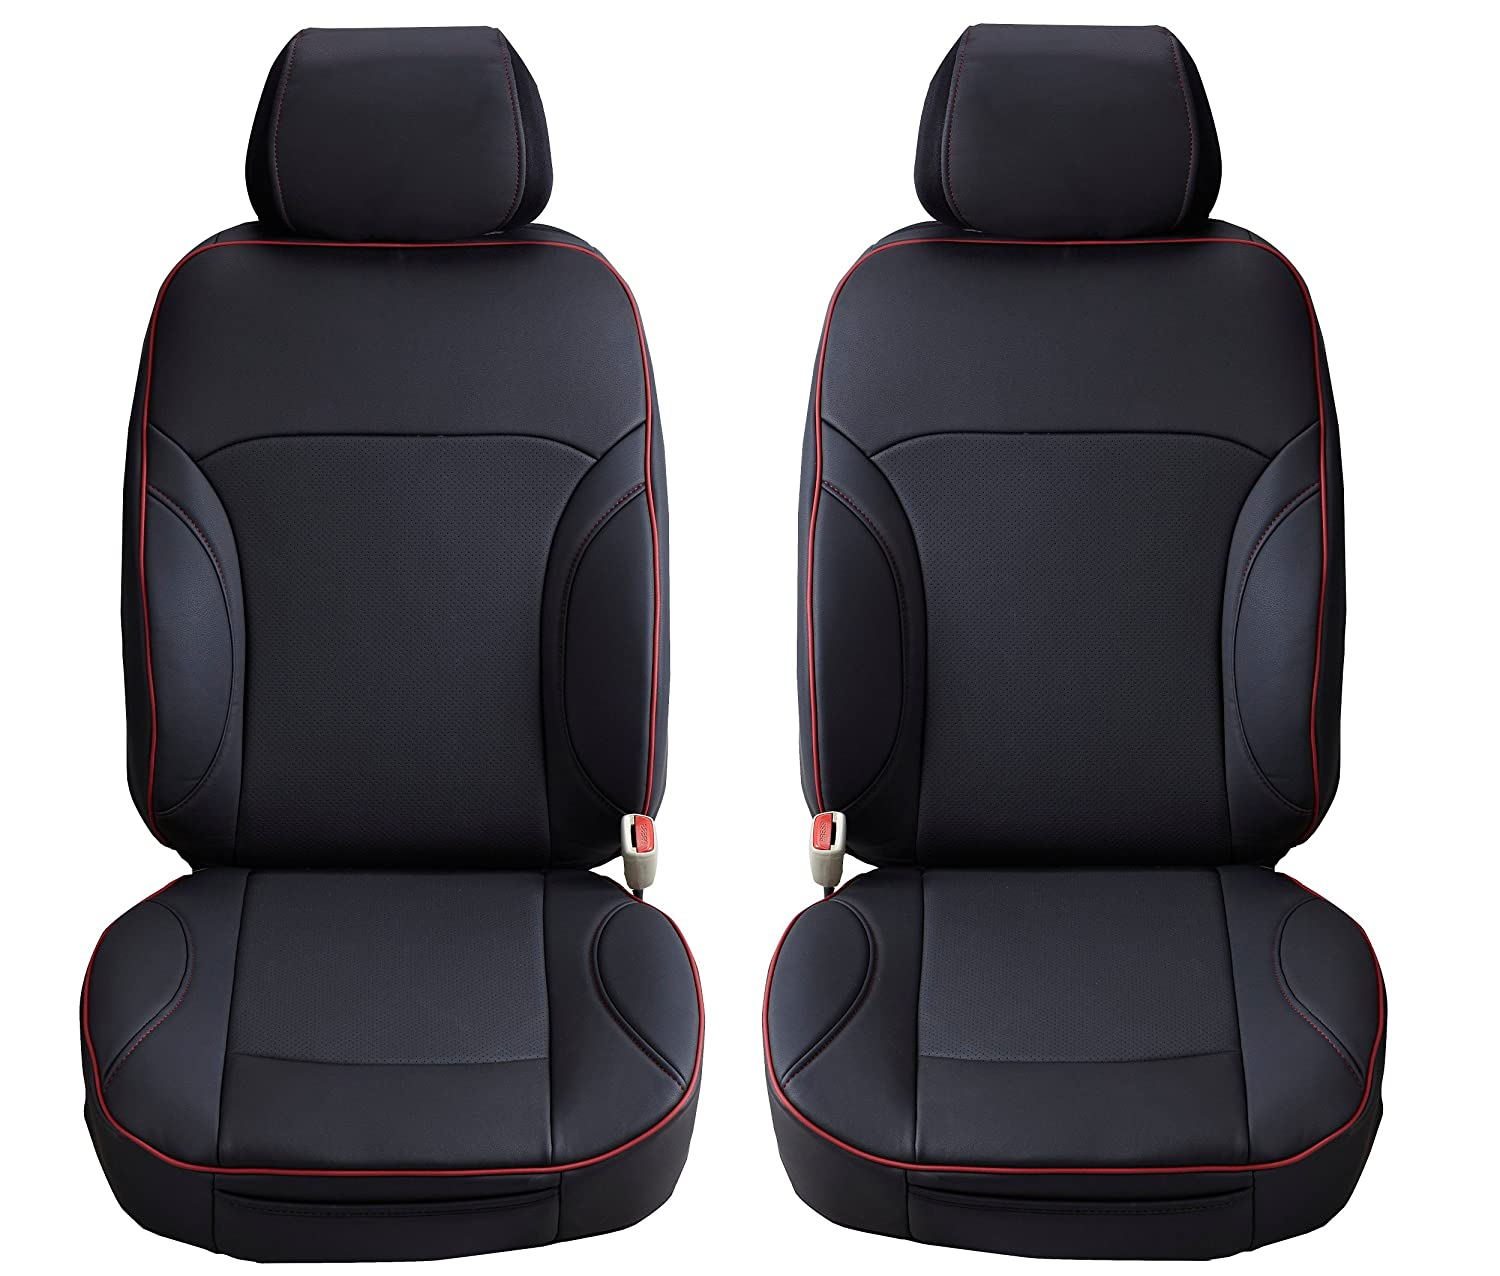 Aegis Cover SPVHA01 Semi Custom PVC Leather Seat Cover A Pair For Honda Accord Front Seats 2 Pack